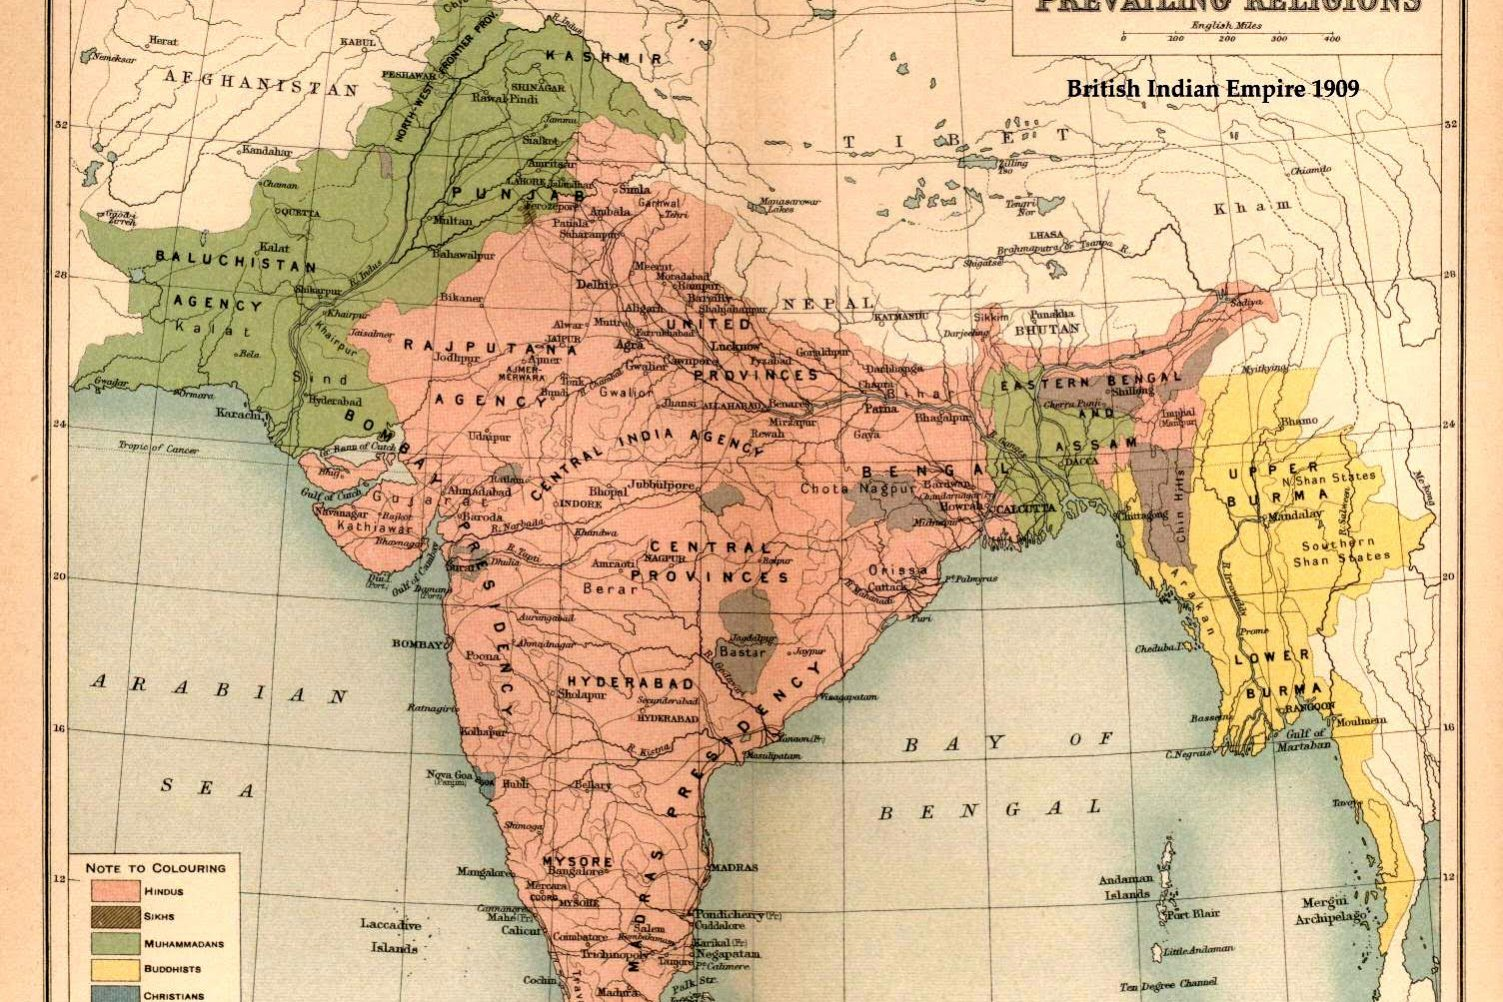 Religion Map Of Asia.Religion And Nationhood In South Asia Al Talib